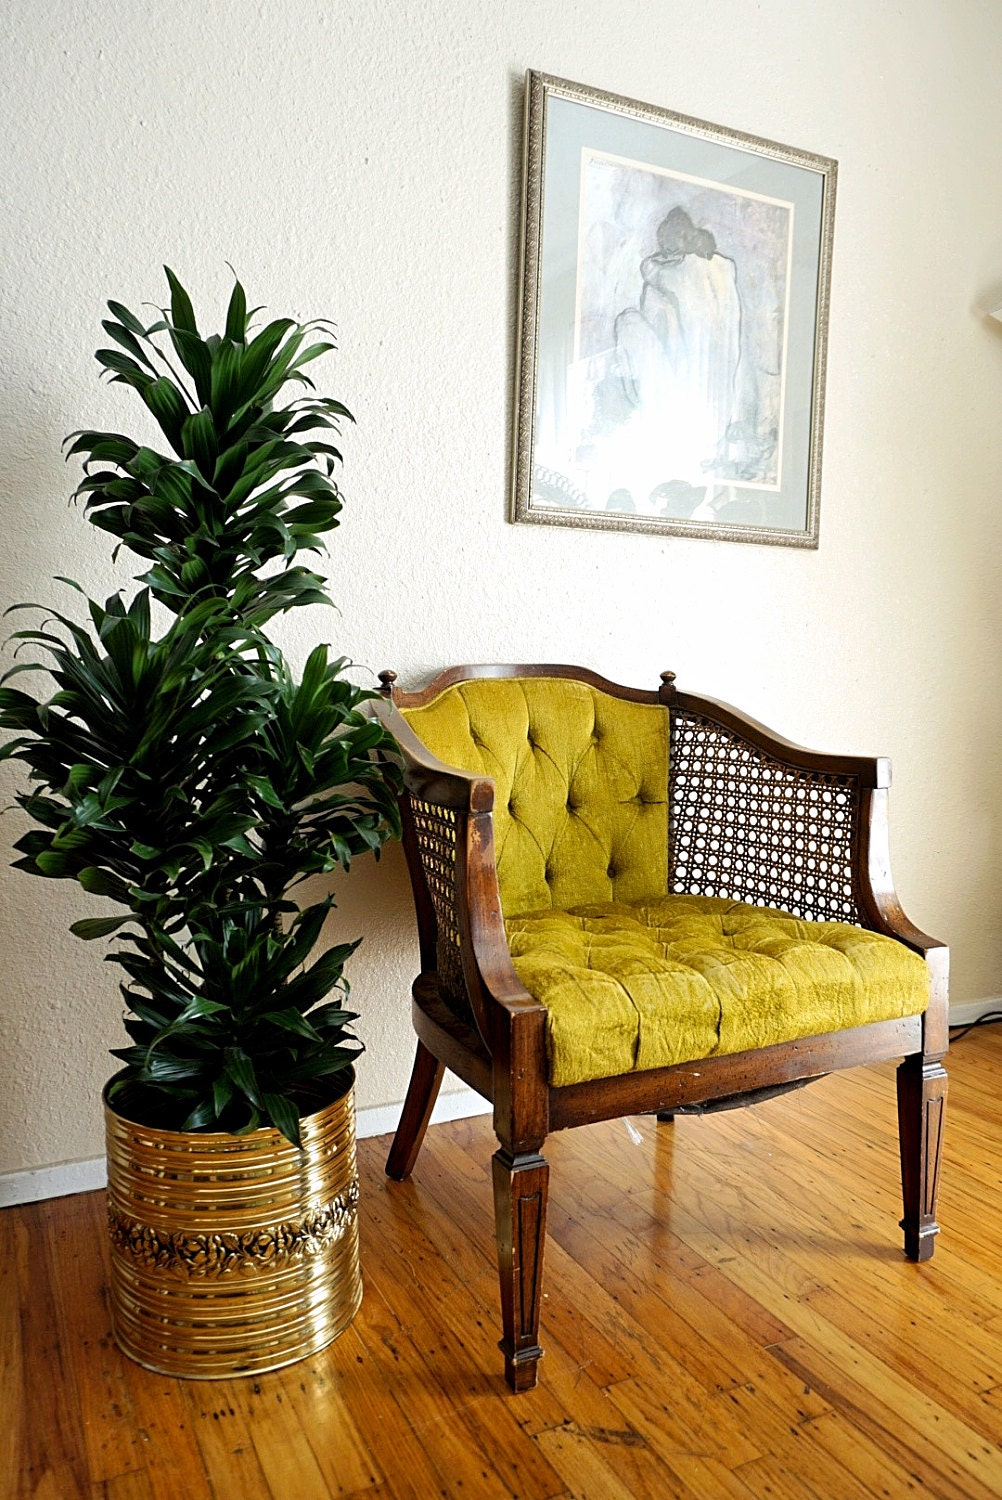 The Tufted Greenery